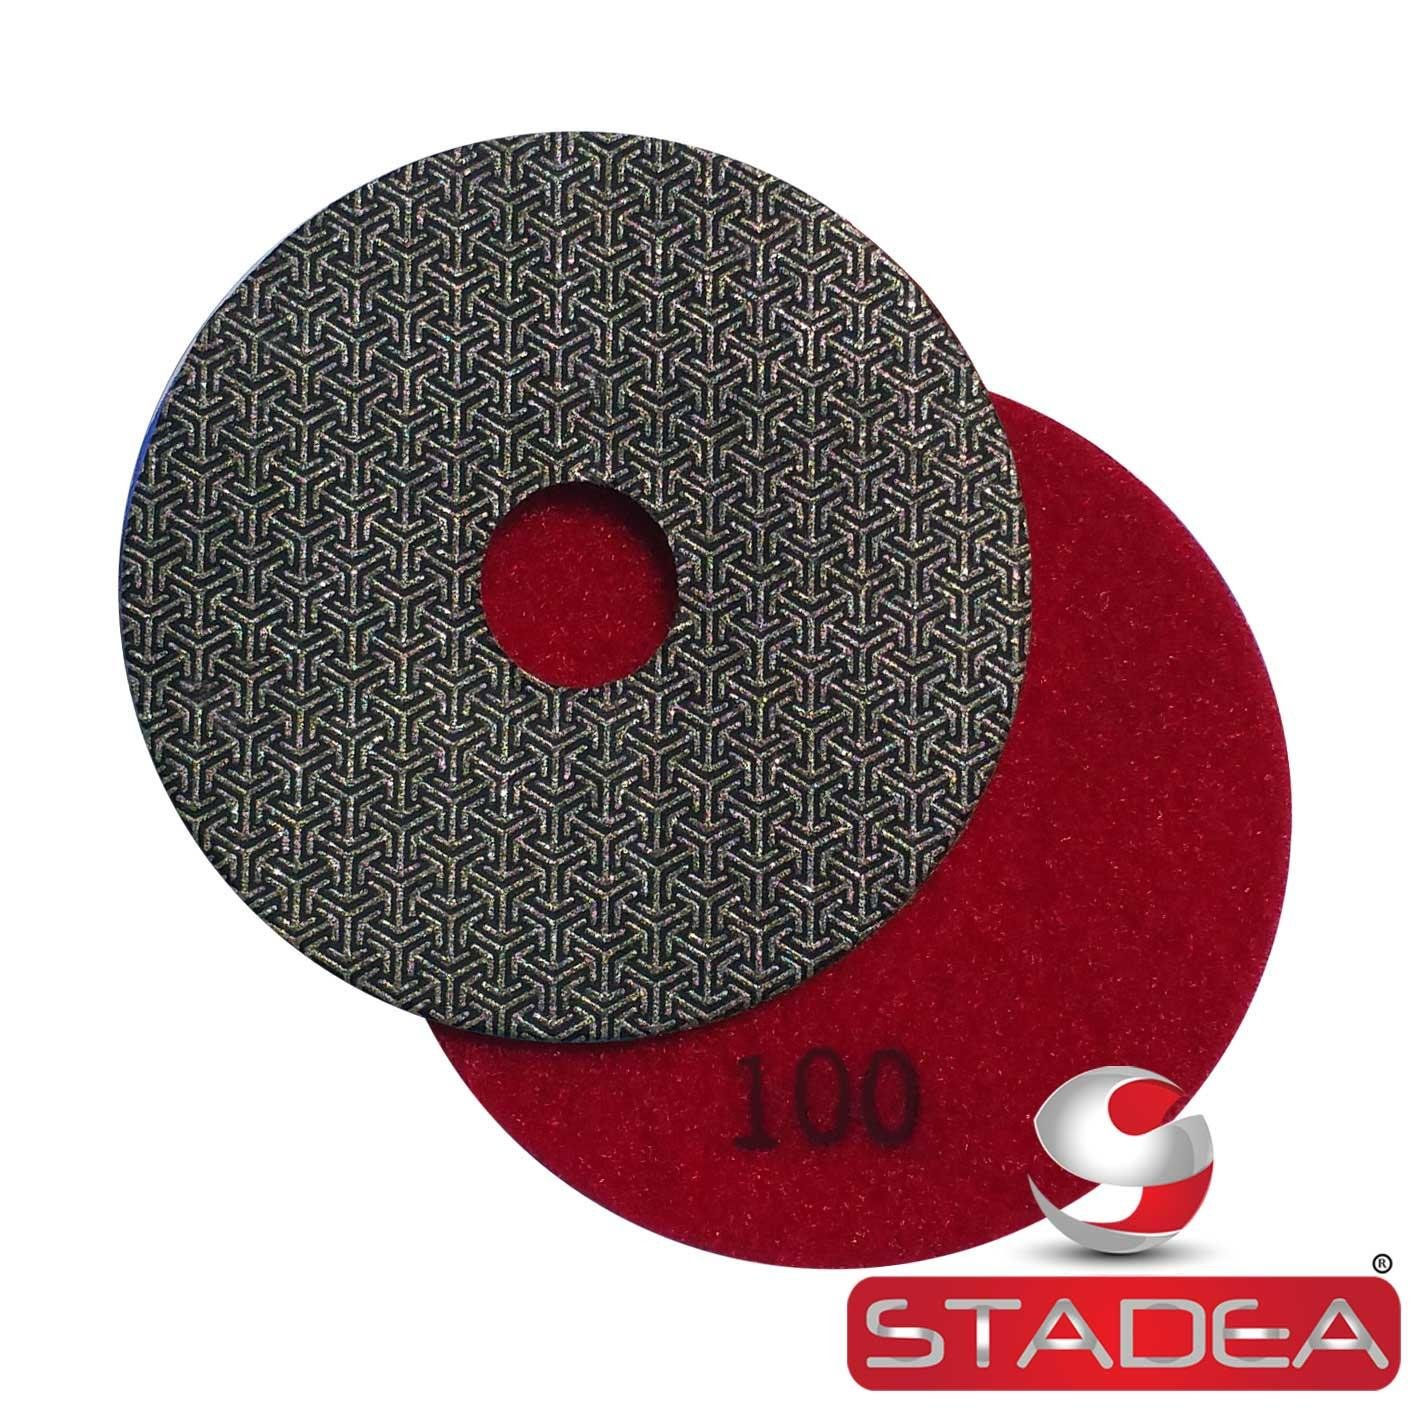 """Stadea PPE114A Electroplated Diamond Polishing Pads 4"""" Glass Concrete Marble Granite Wet Dry Sandpaper Tool for Sanding Polishing Surfaces"""